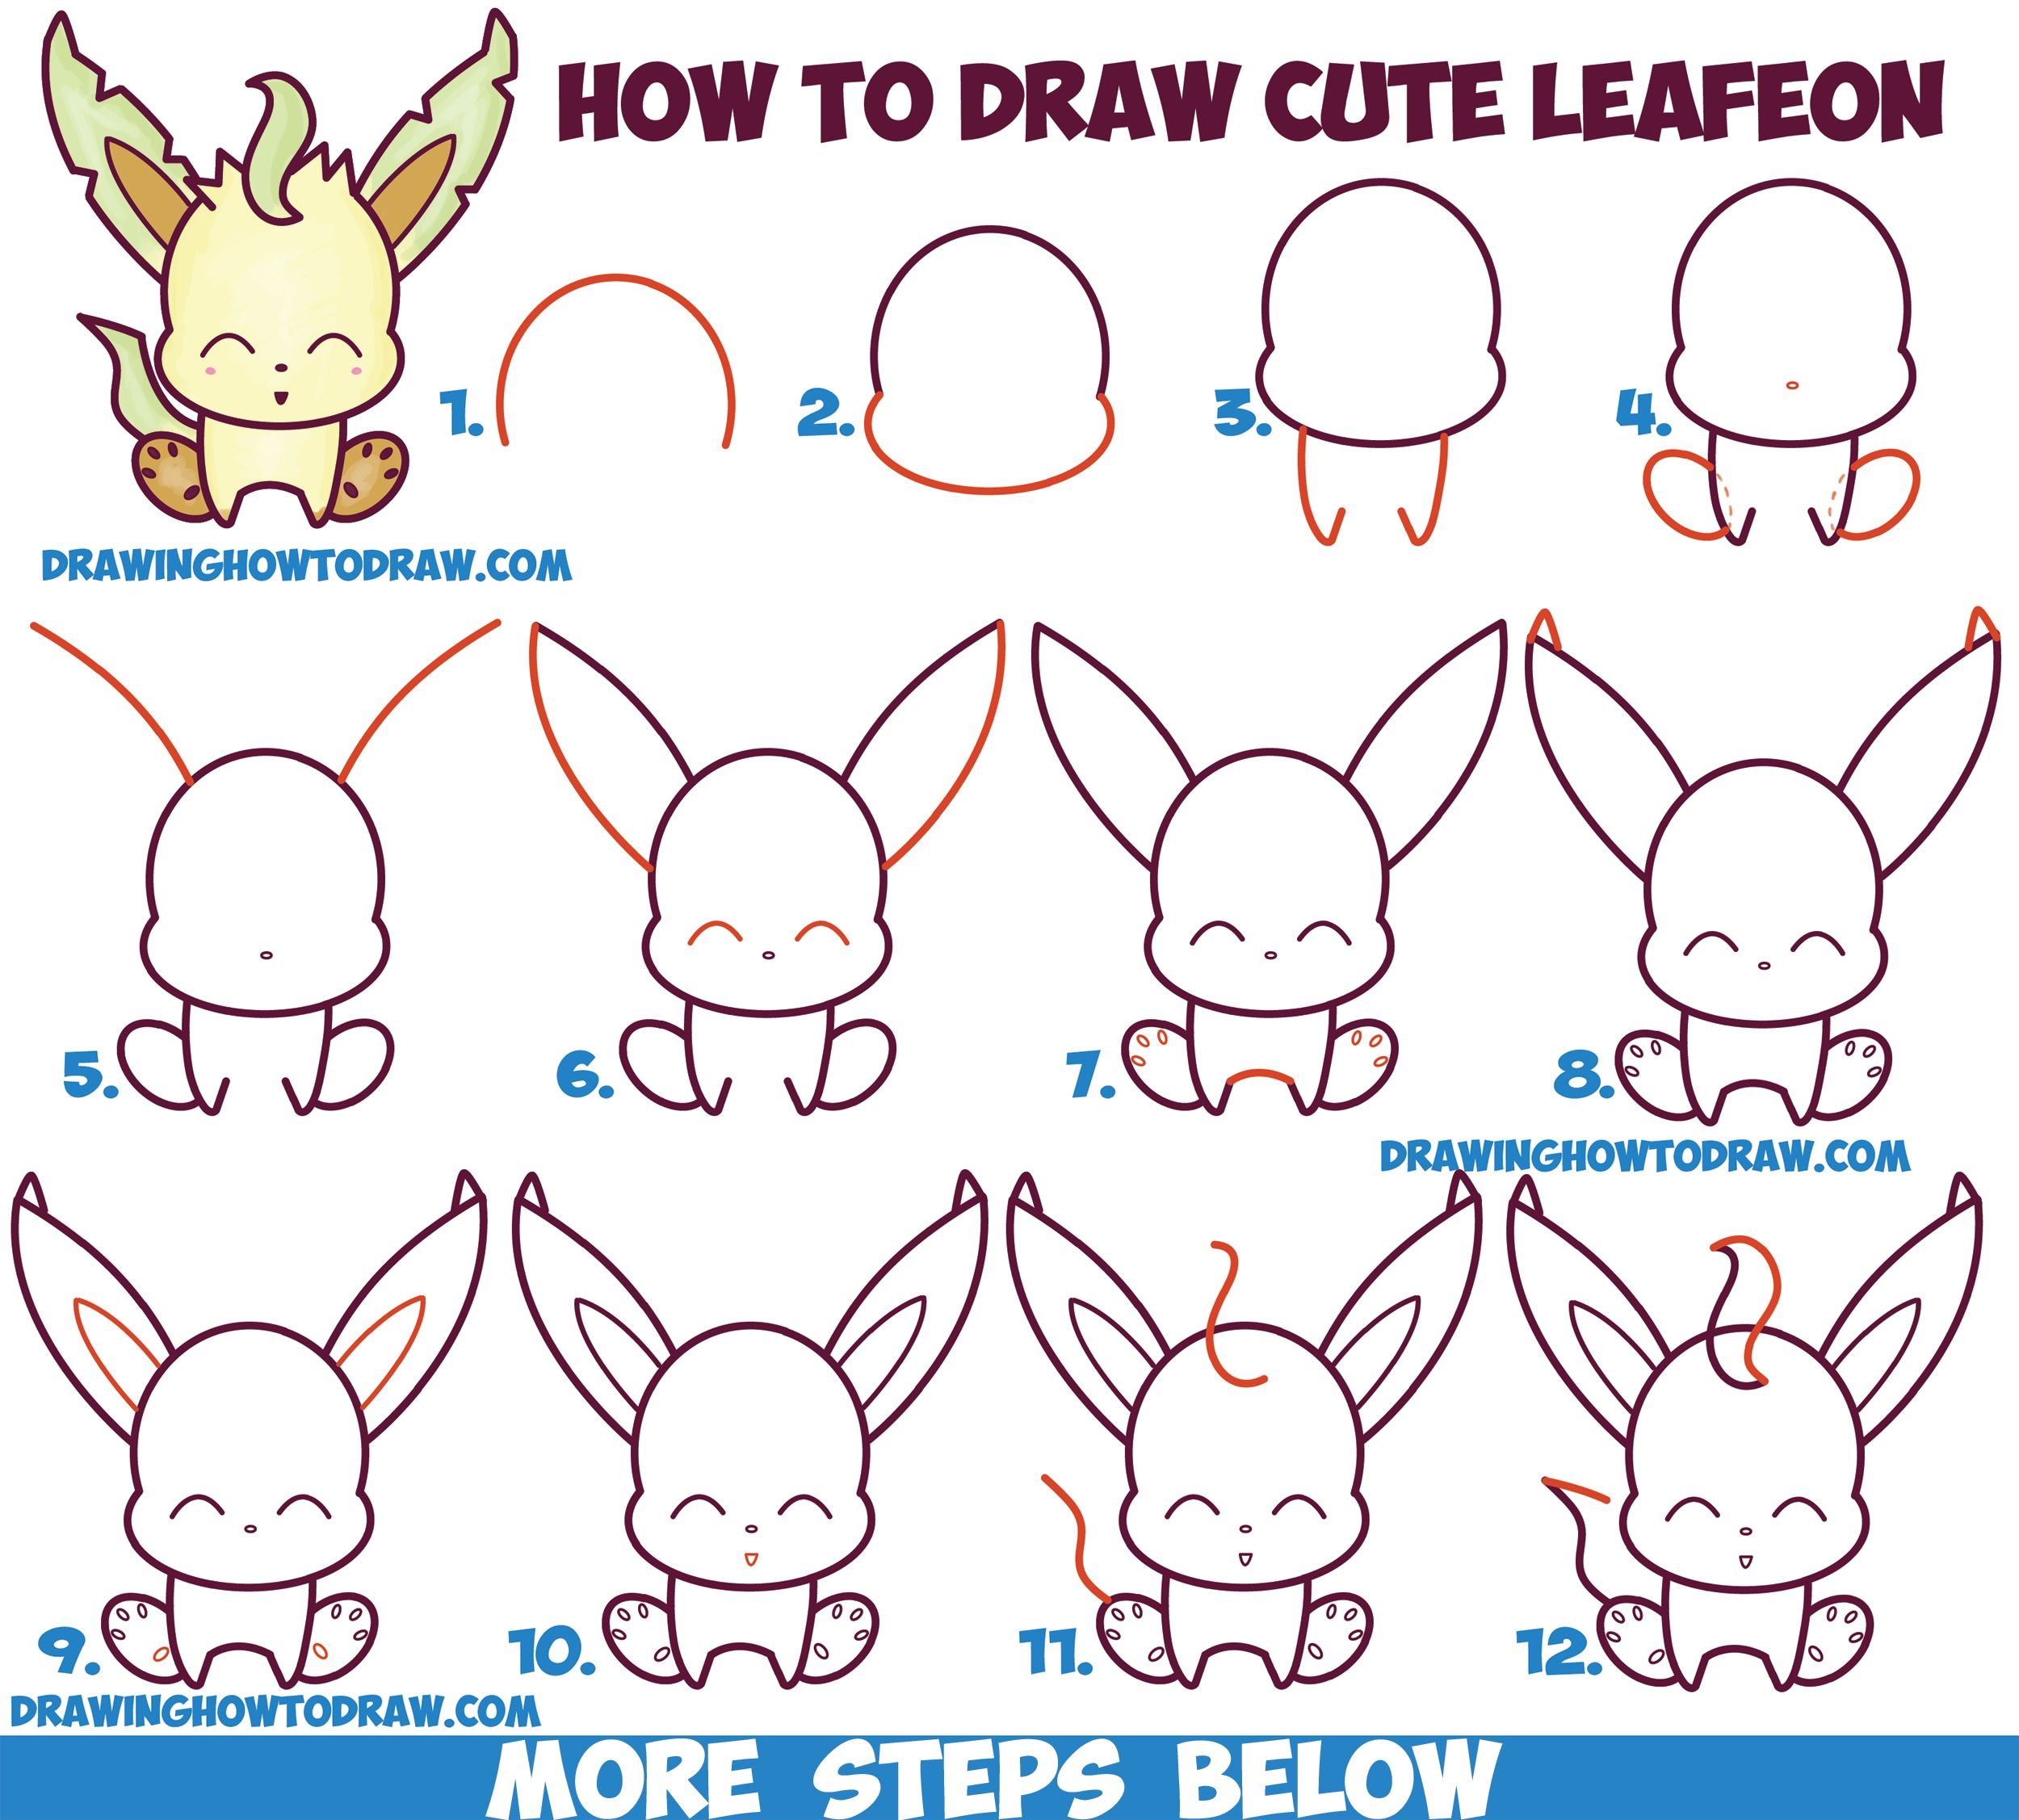 How To Draw Cute Kawaii Chibi Leafeon From Pokemon Easy Step By Step Drawing Tutorial For Kids How To Draw Step By Step Drawing Tutorials Cute Drawings Pokemon Drawings Drawing